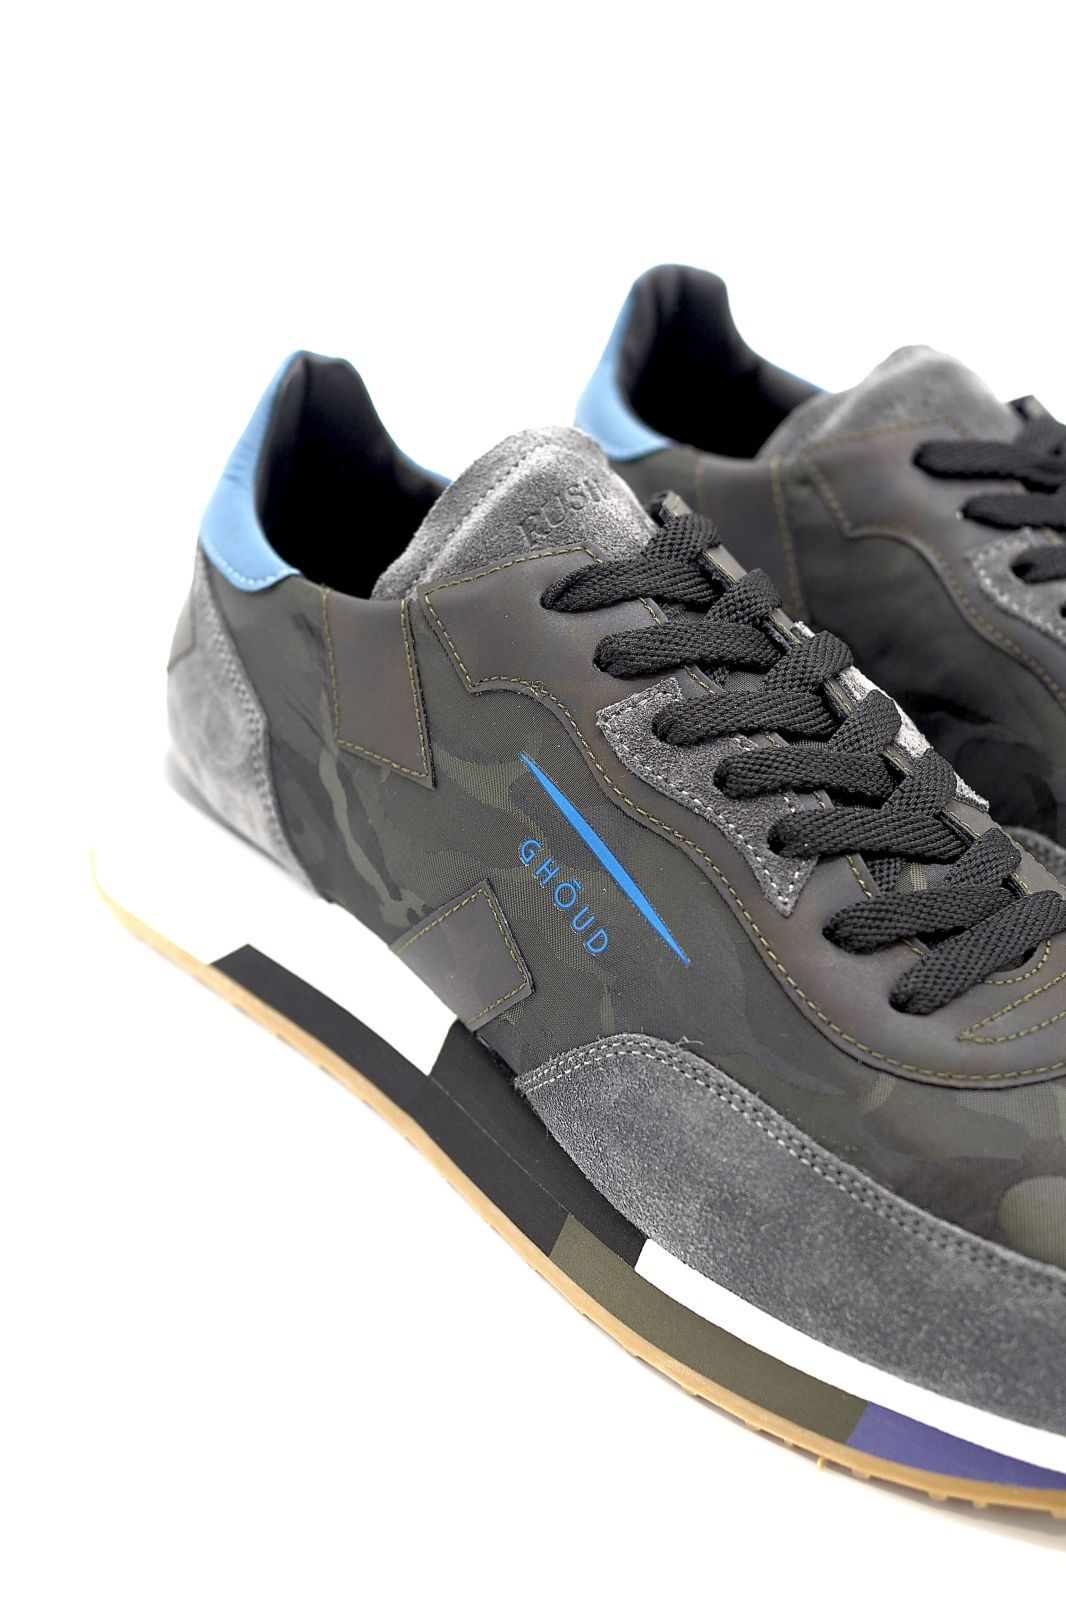 Ghoud basket bas Gris hommes (GHOUD-Runner Men semelle multi - RMLM-12 camouflage gris & bleu) - Marine | Much more than shoes